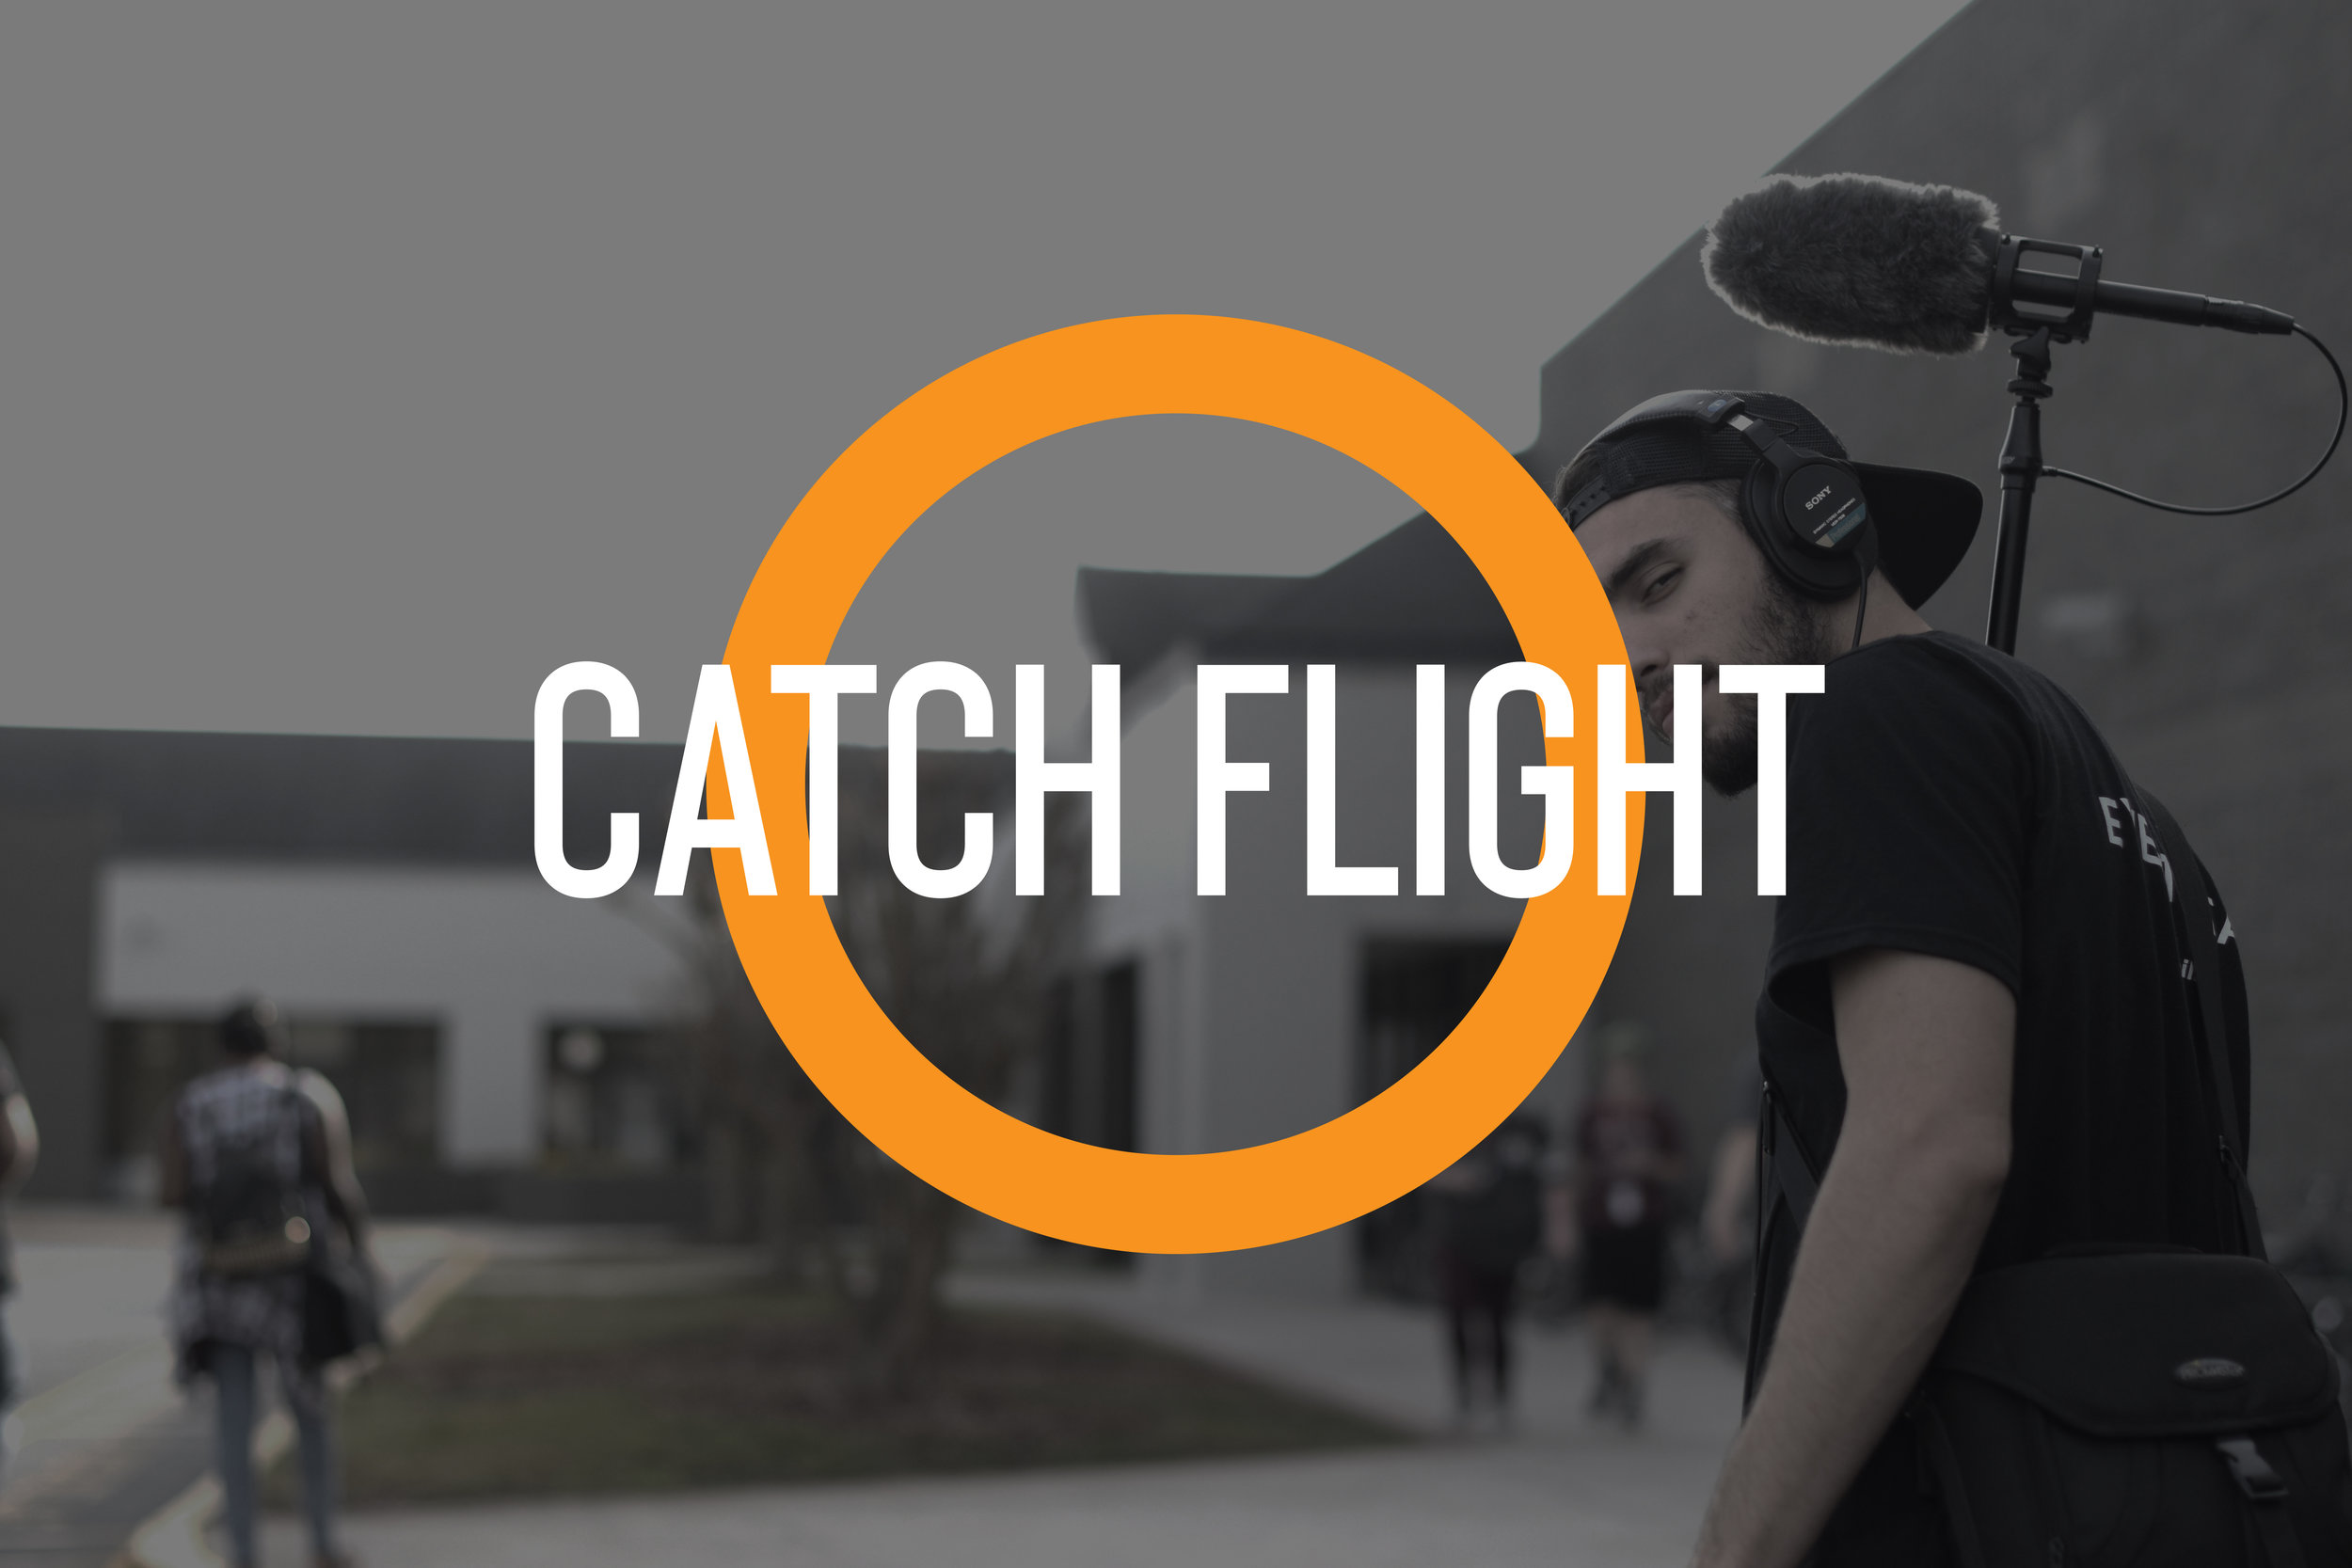 CATCHFLIGHT.jpg